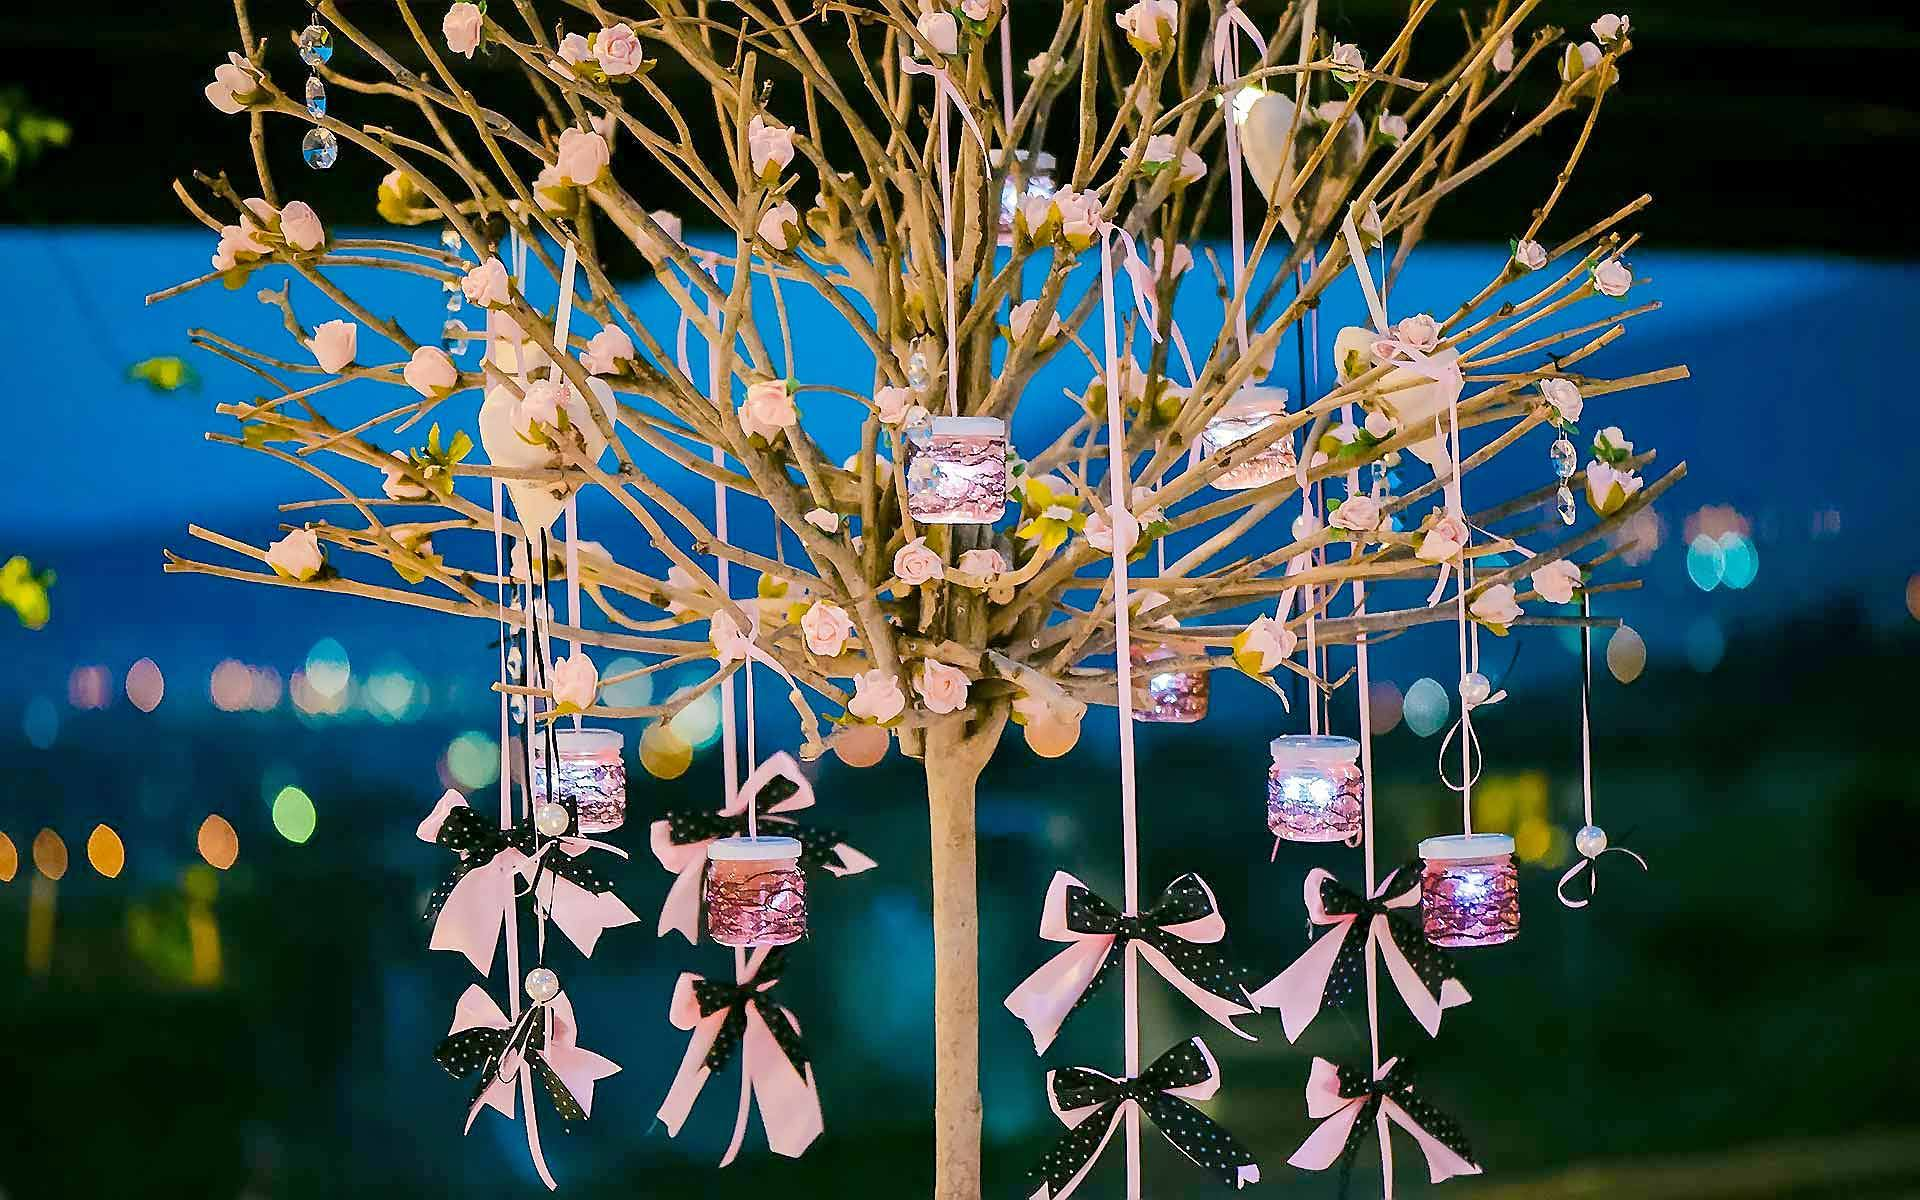 A-Tree-Draped-With-Hearts-And-Baby-Roses-Bows-And-Candles-by-Diamond-Events-christening